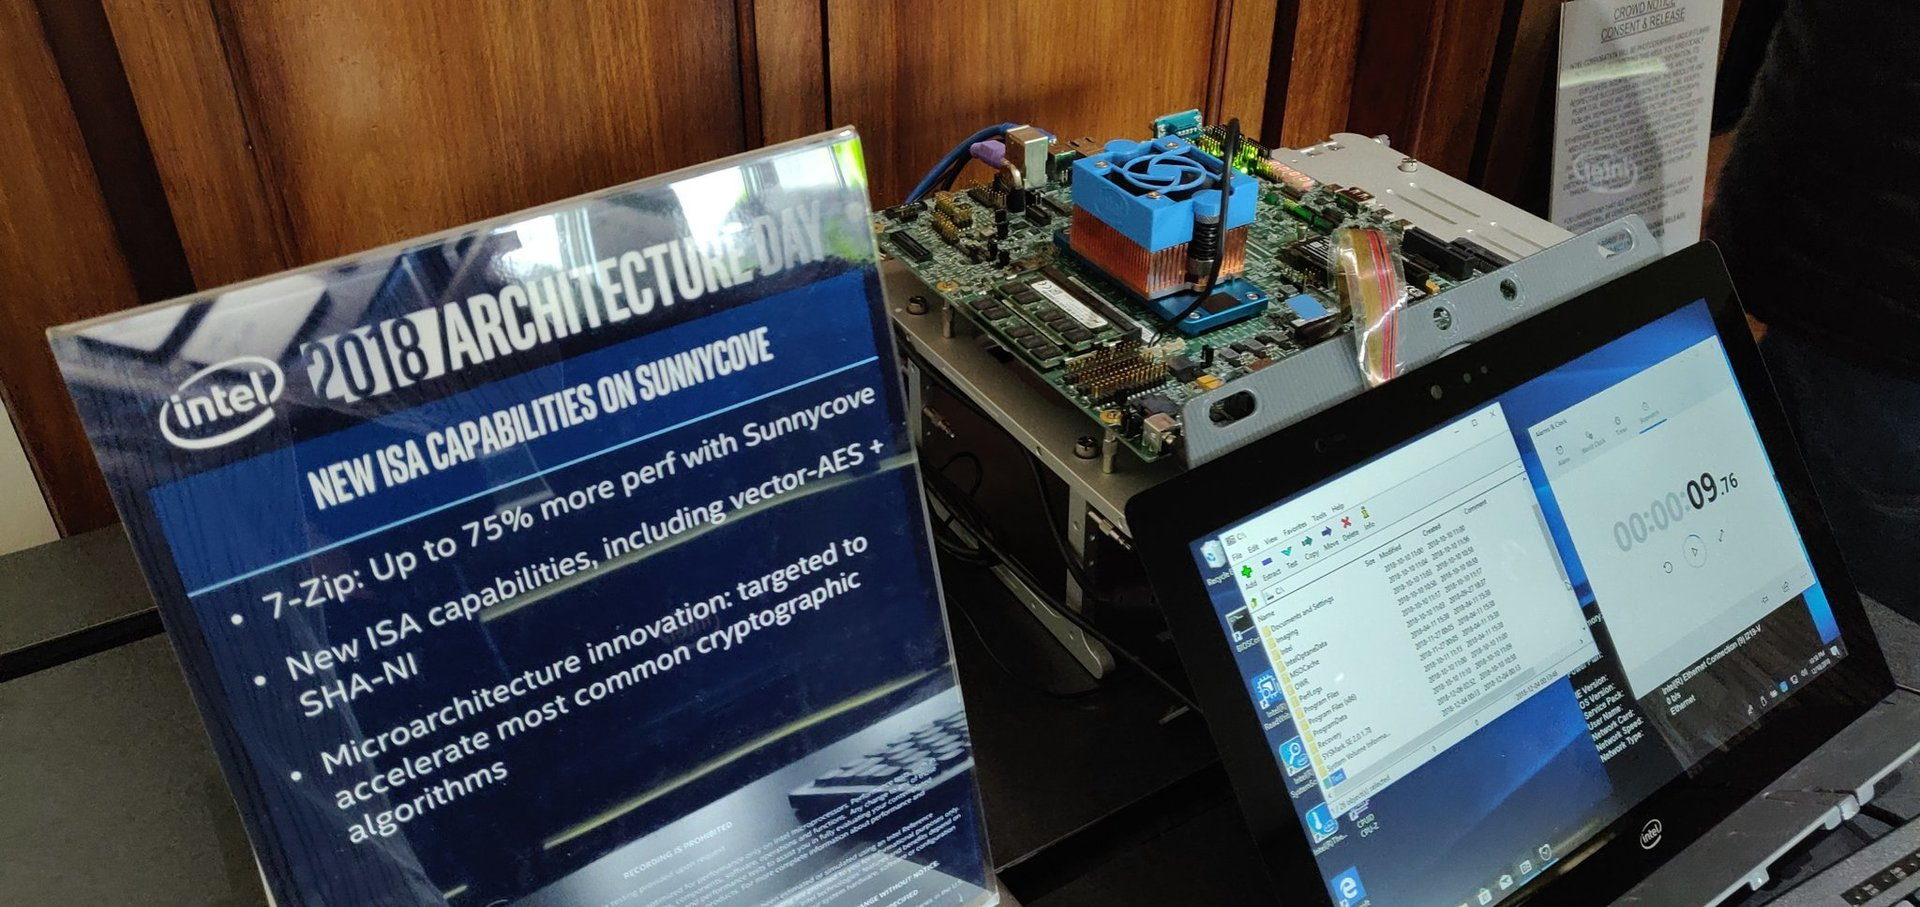 Intel Ice Lake (Sunny Cove) mit neuen Instruktionen